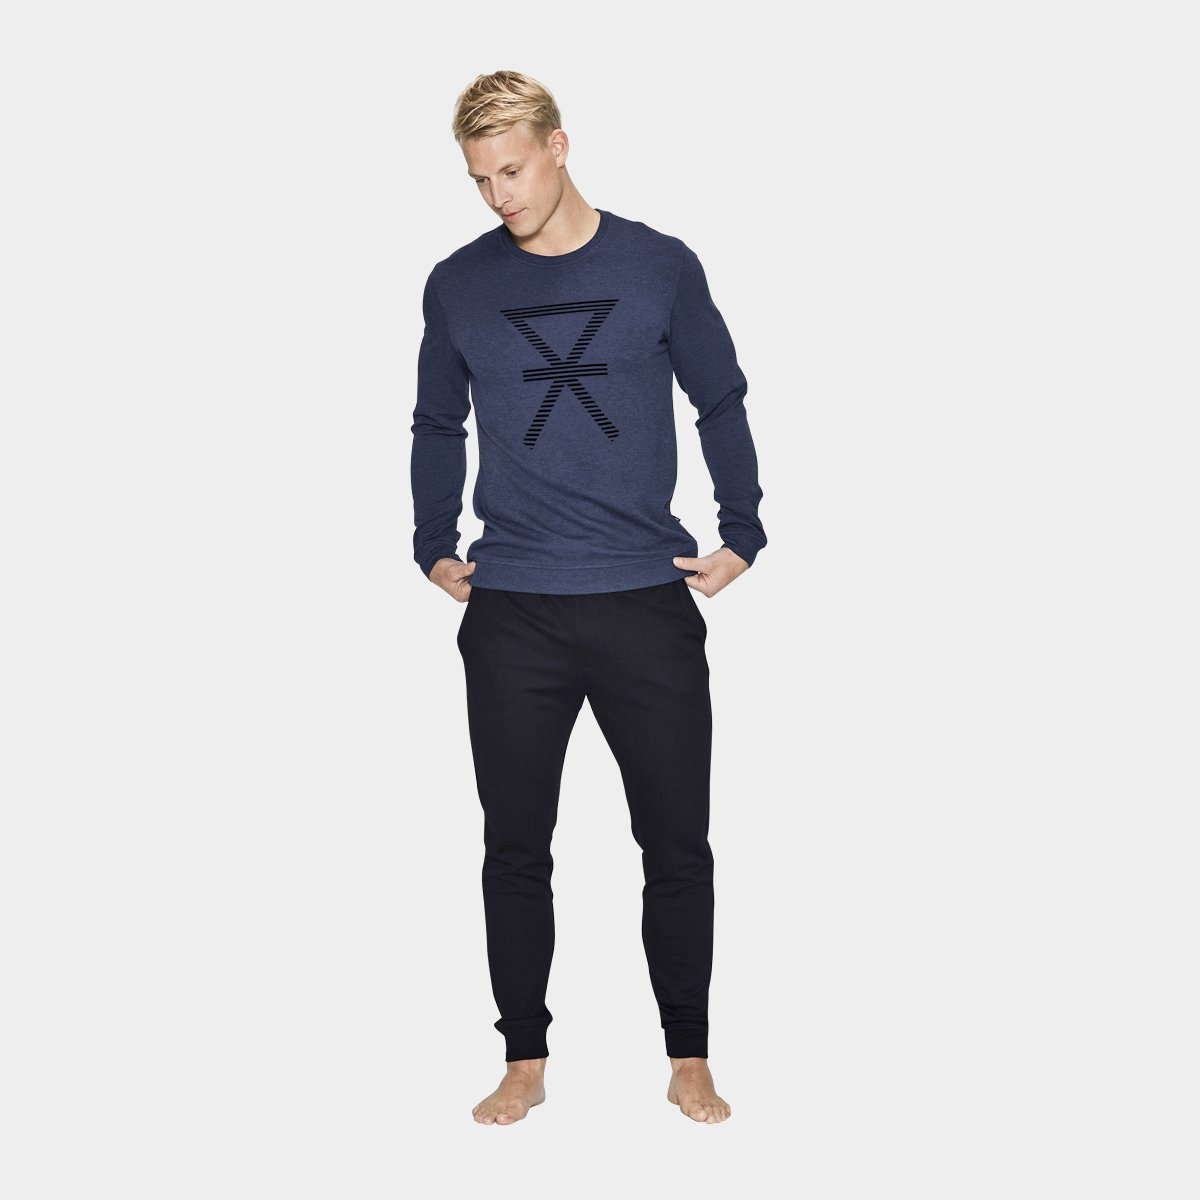 navy sweatshirt og sorte pants